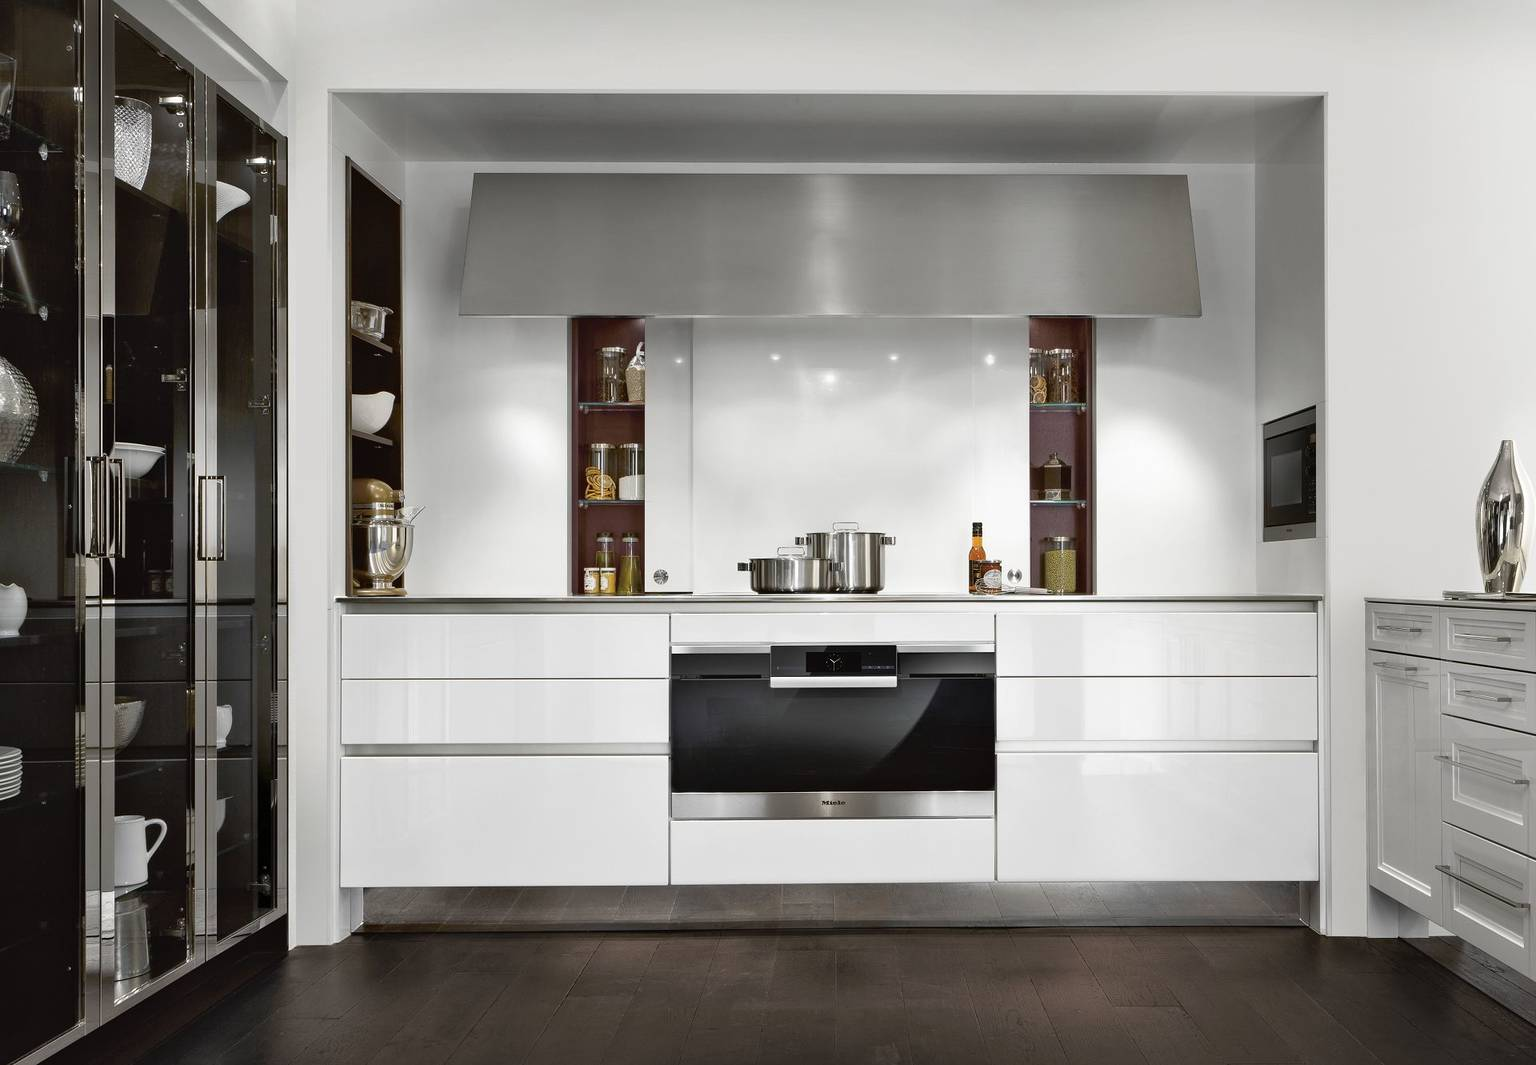 SieMatic Classic BeauxArts S2 kitchen in lotus white with impressive StoneDesign sliding doors in the niche behind the stovetop